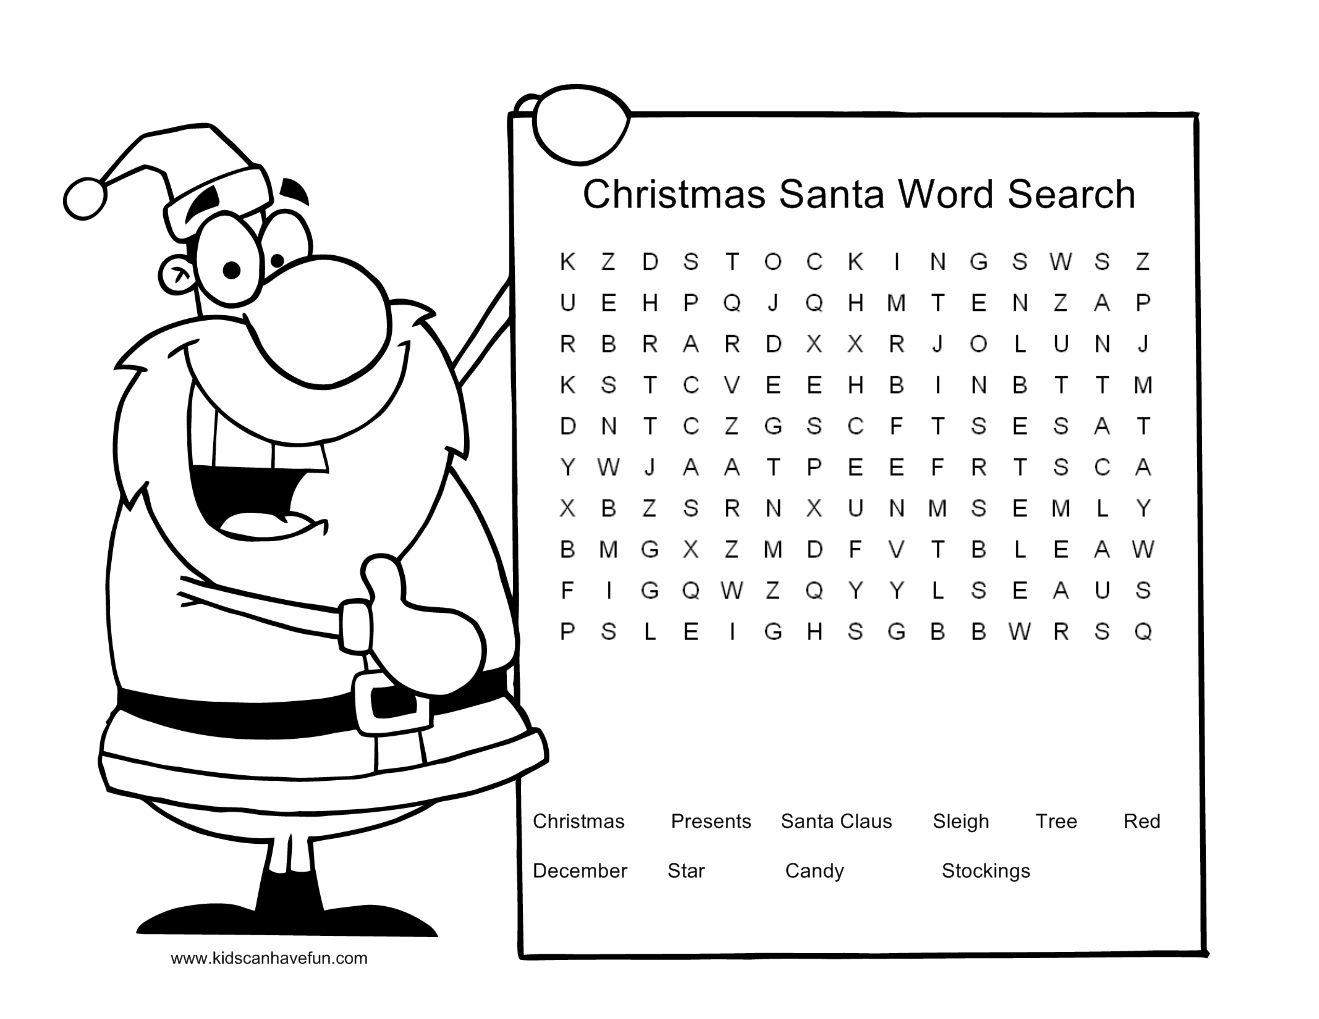 Worksheets Christmas Word Search Worksheets 1000 images about christmas games on pinterest word search words and search